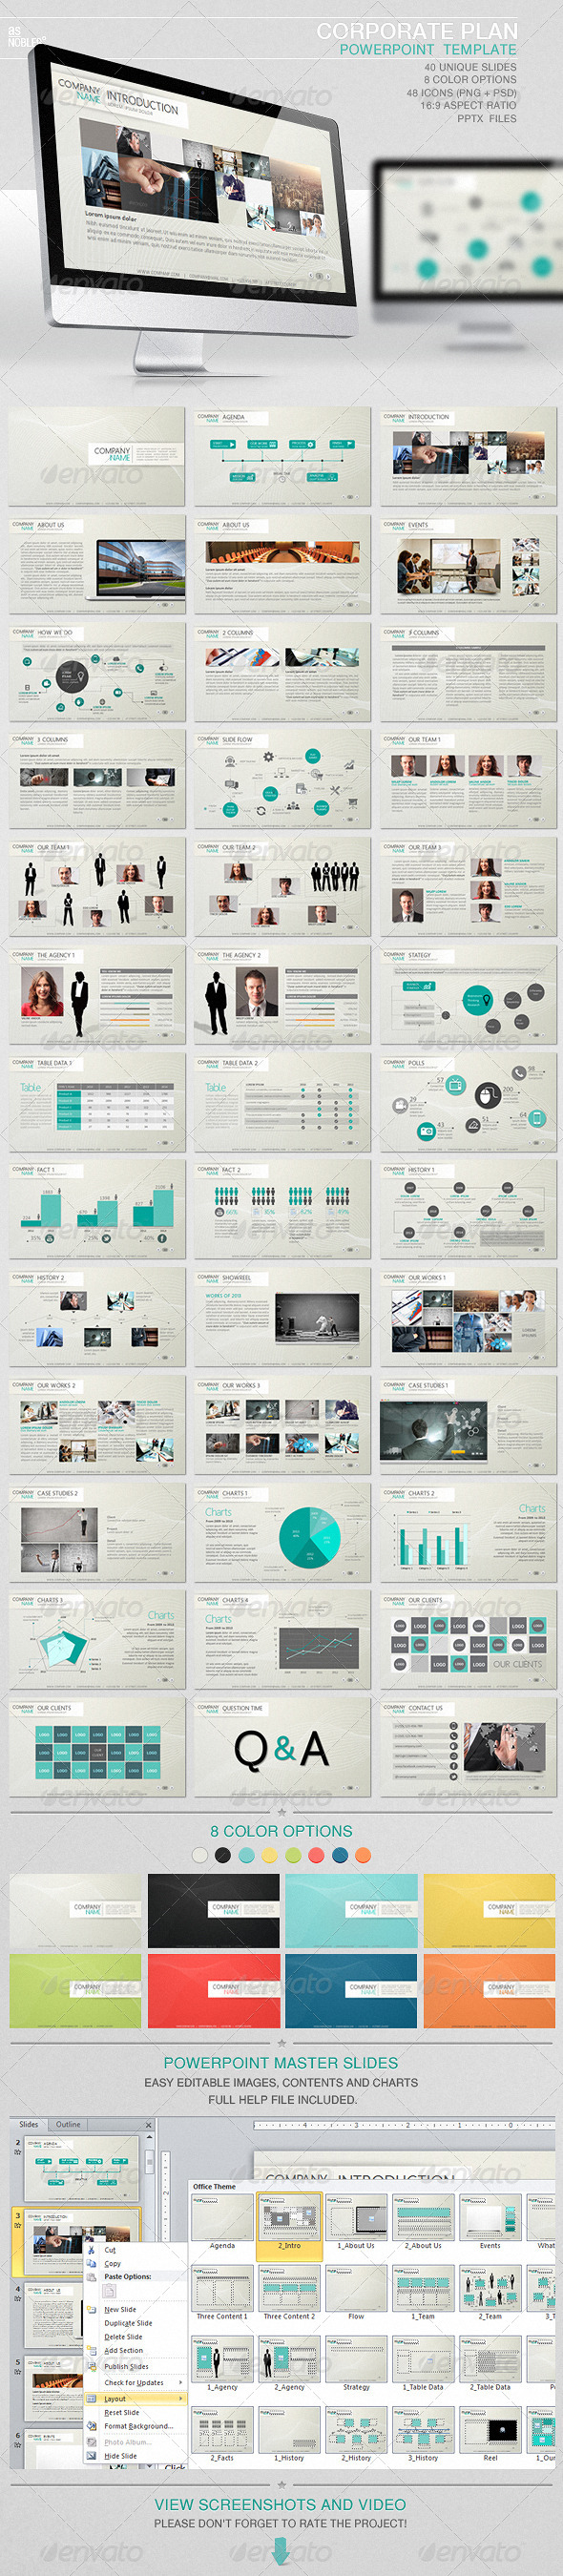 Corporate Plan PowerPoint Template - Presentation Templates